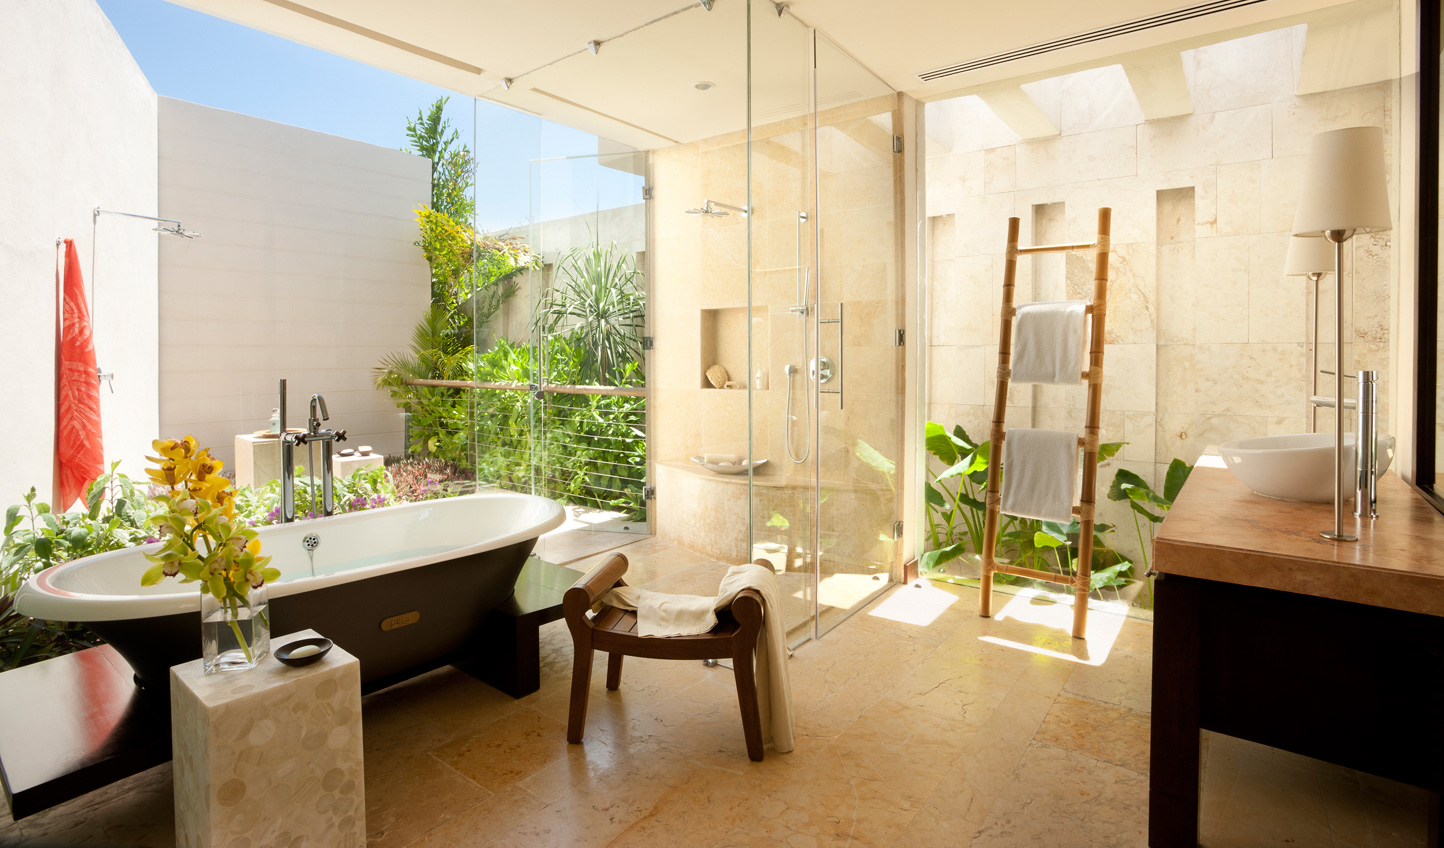 Stunning bathrooms bring the outside in